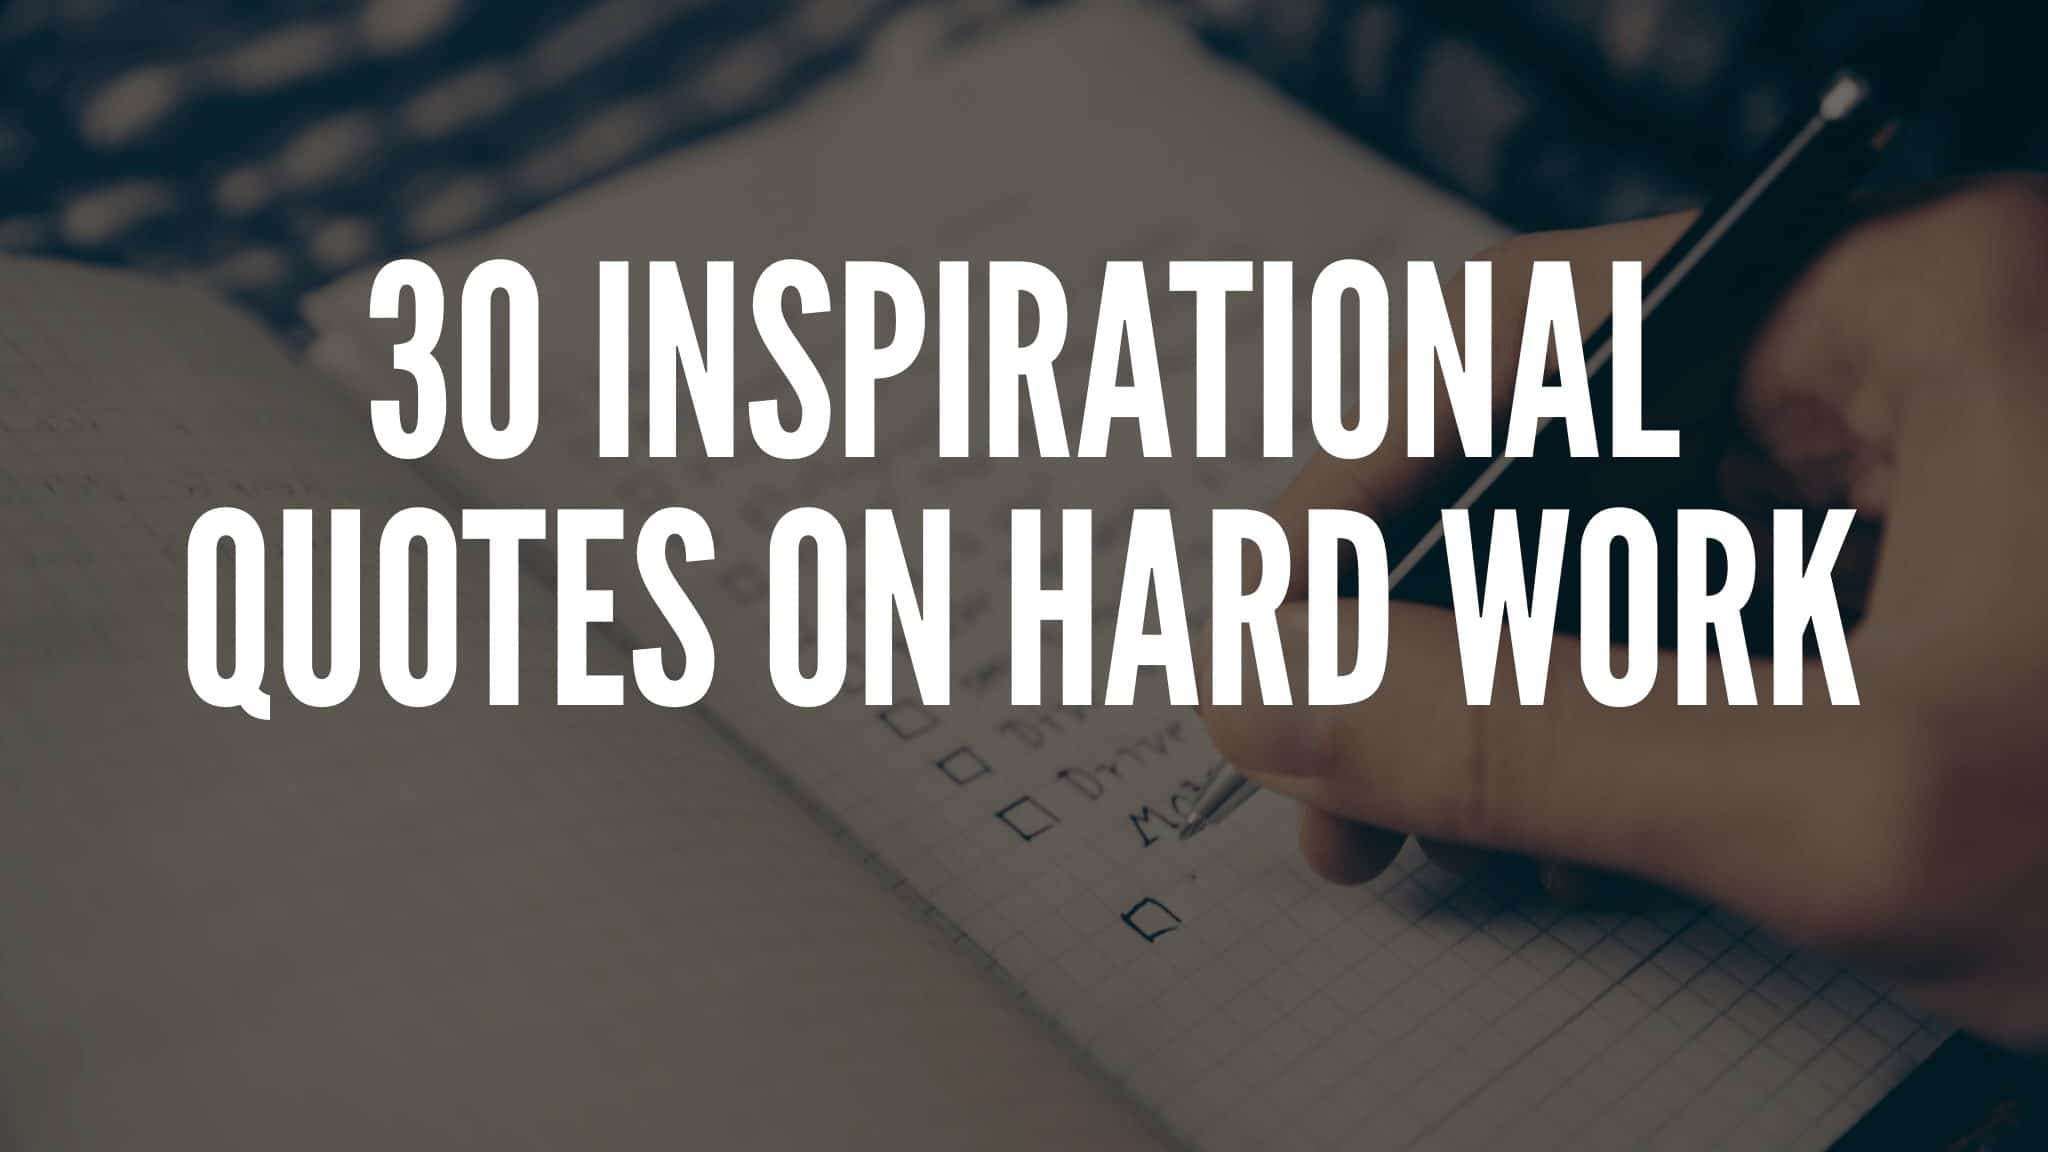 30 Inspirational Quotes On Hard Work